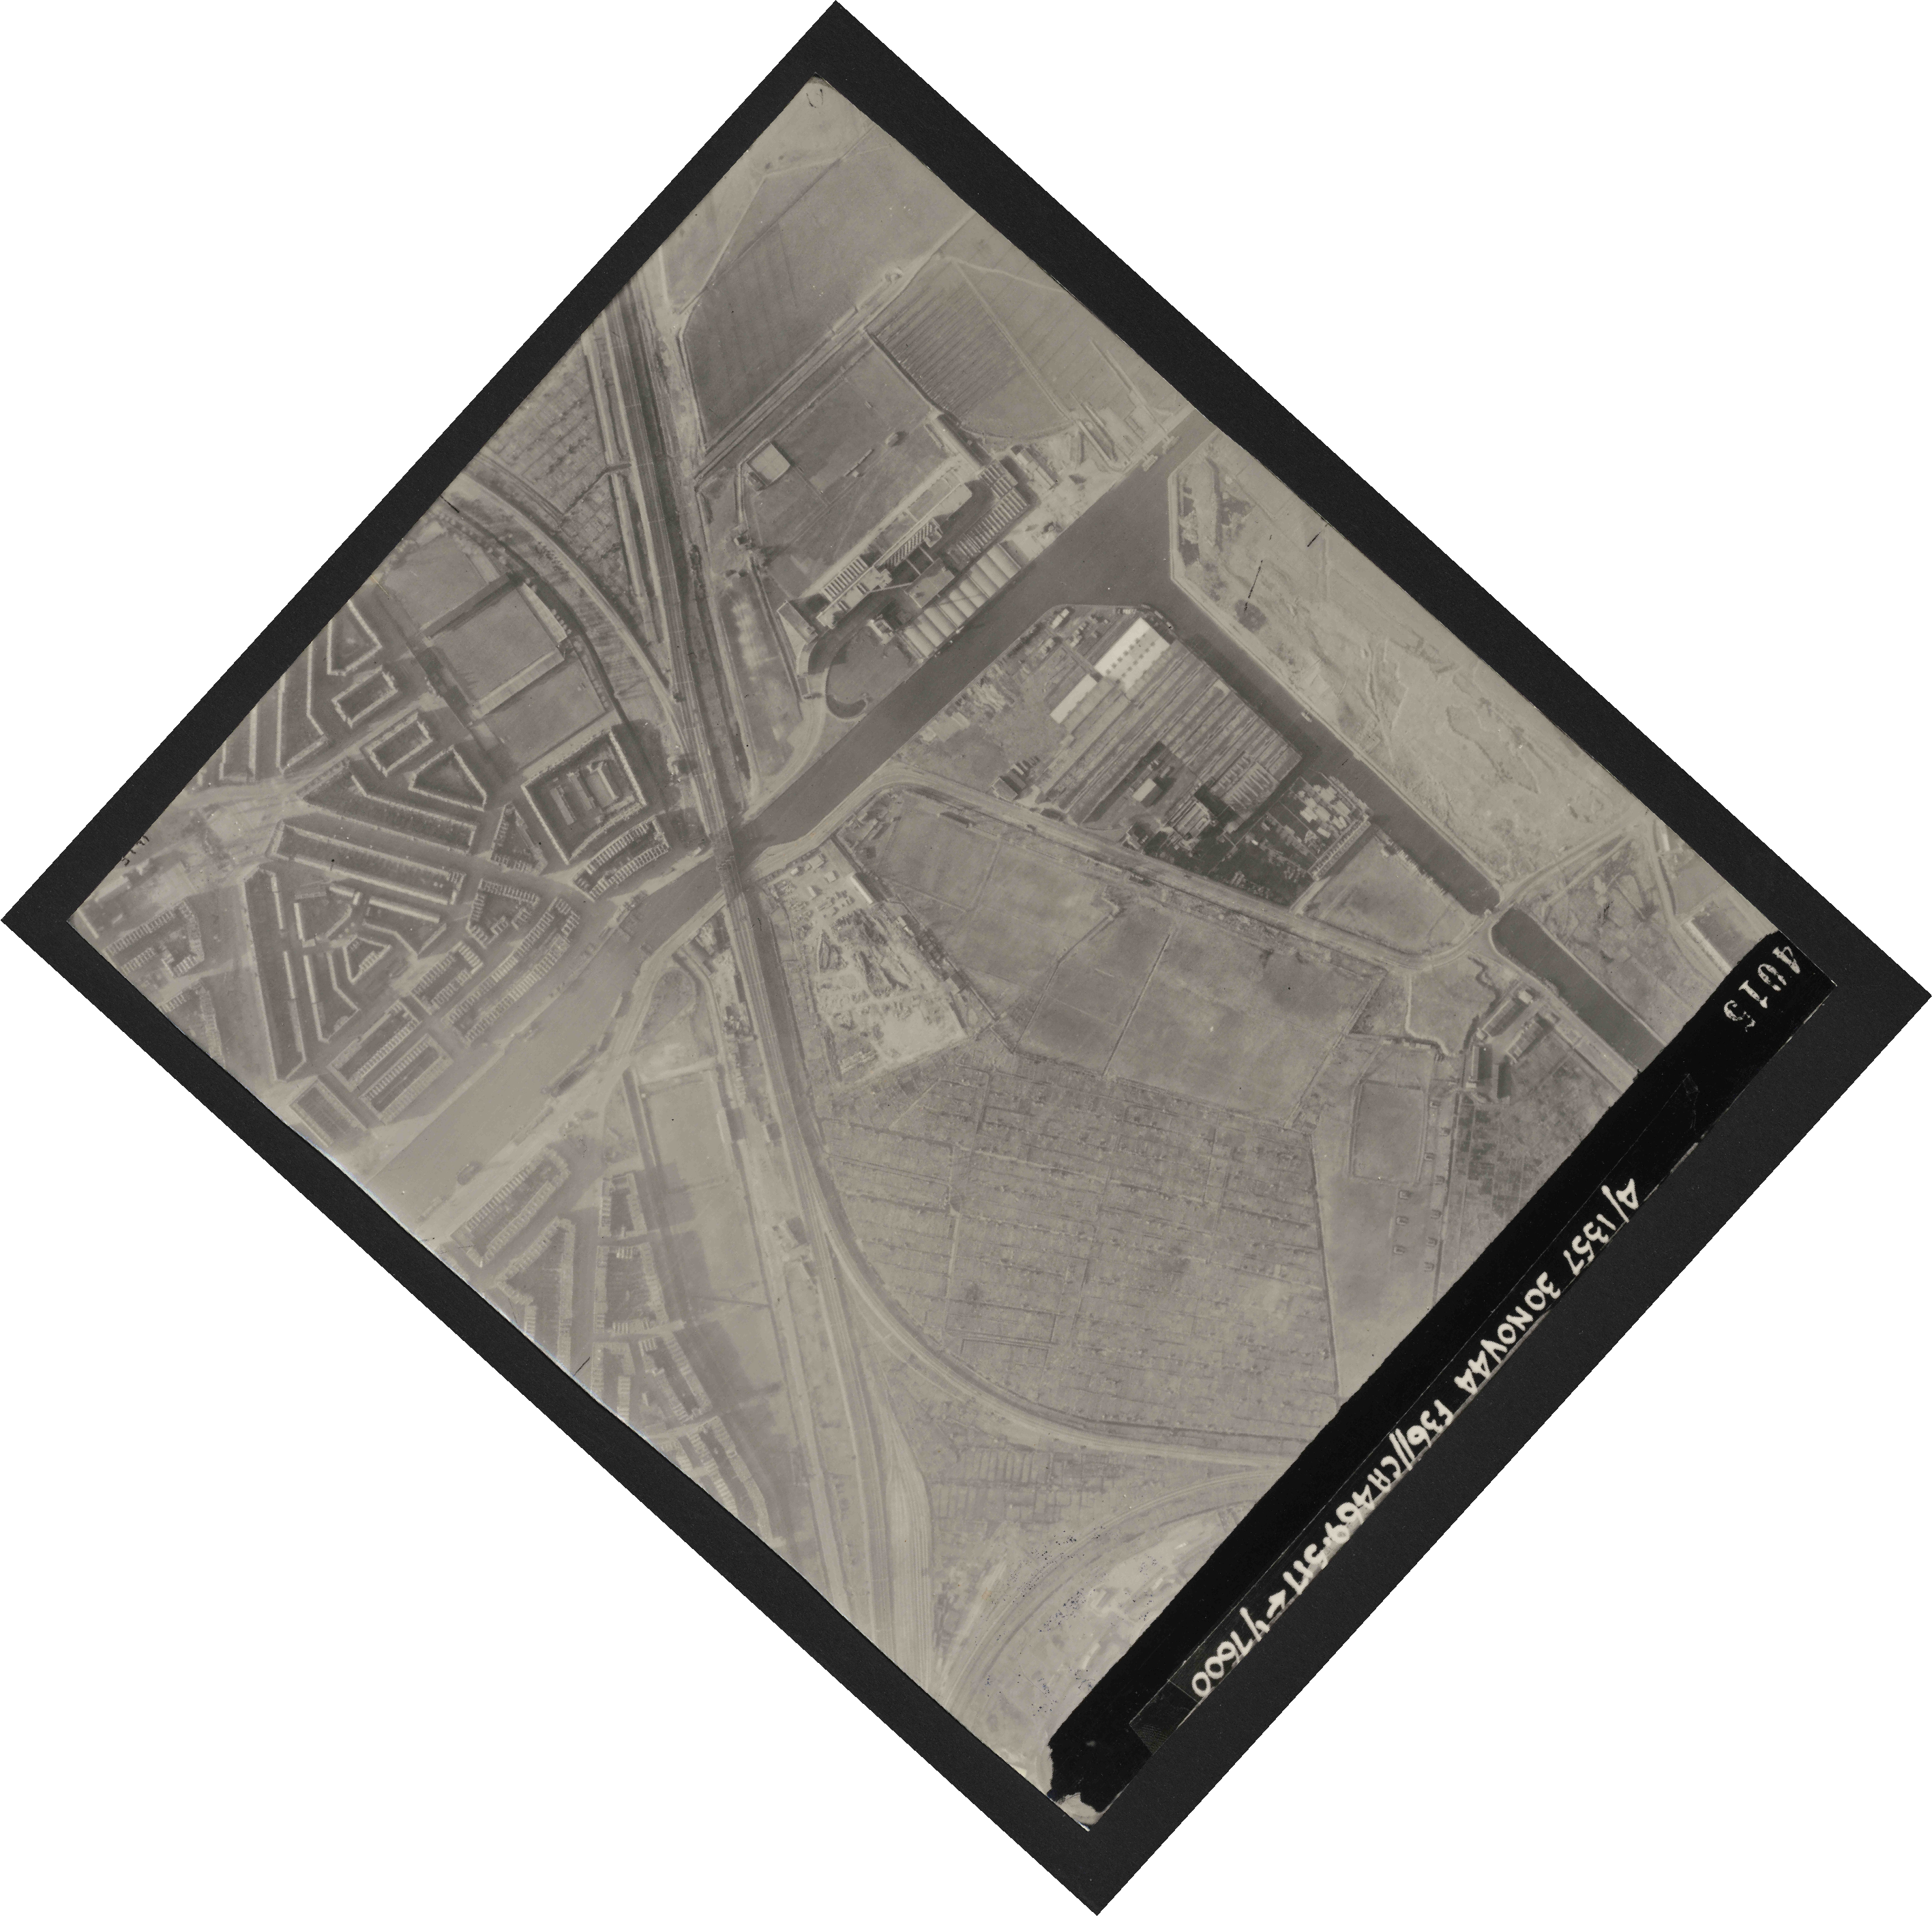 Collection RAF aerial photos 1940-1945 - flight 259, run 02, photo 4015